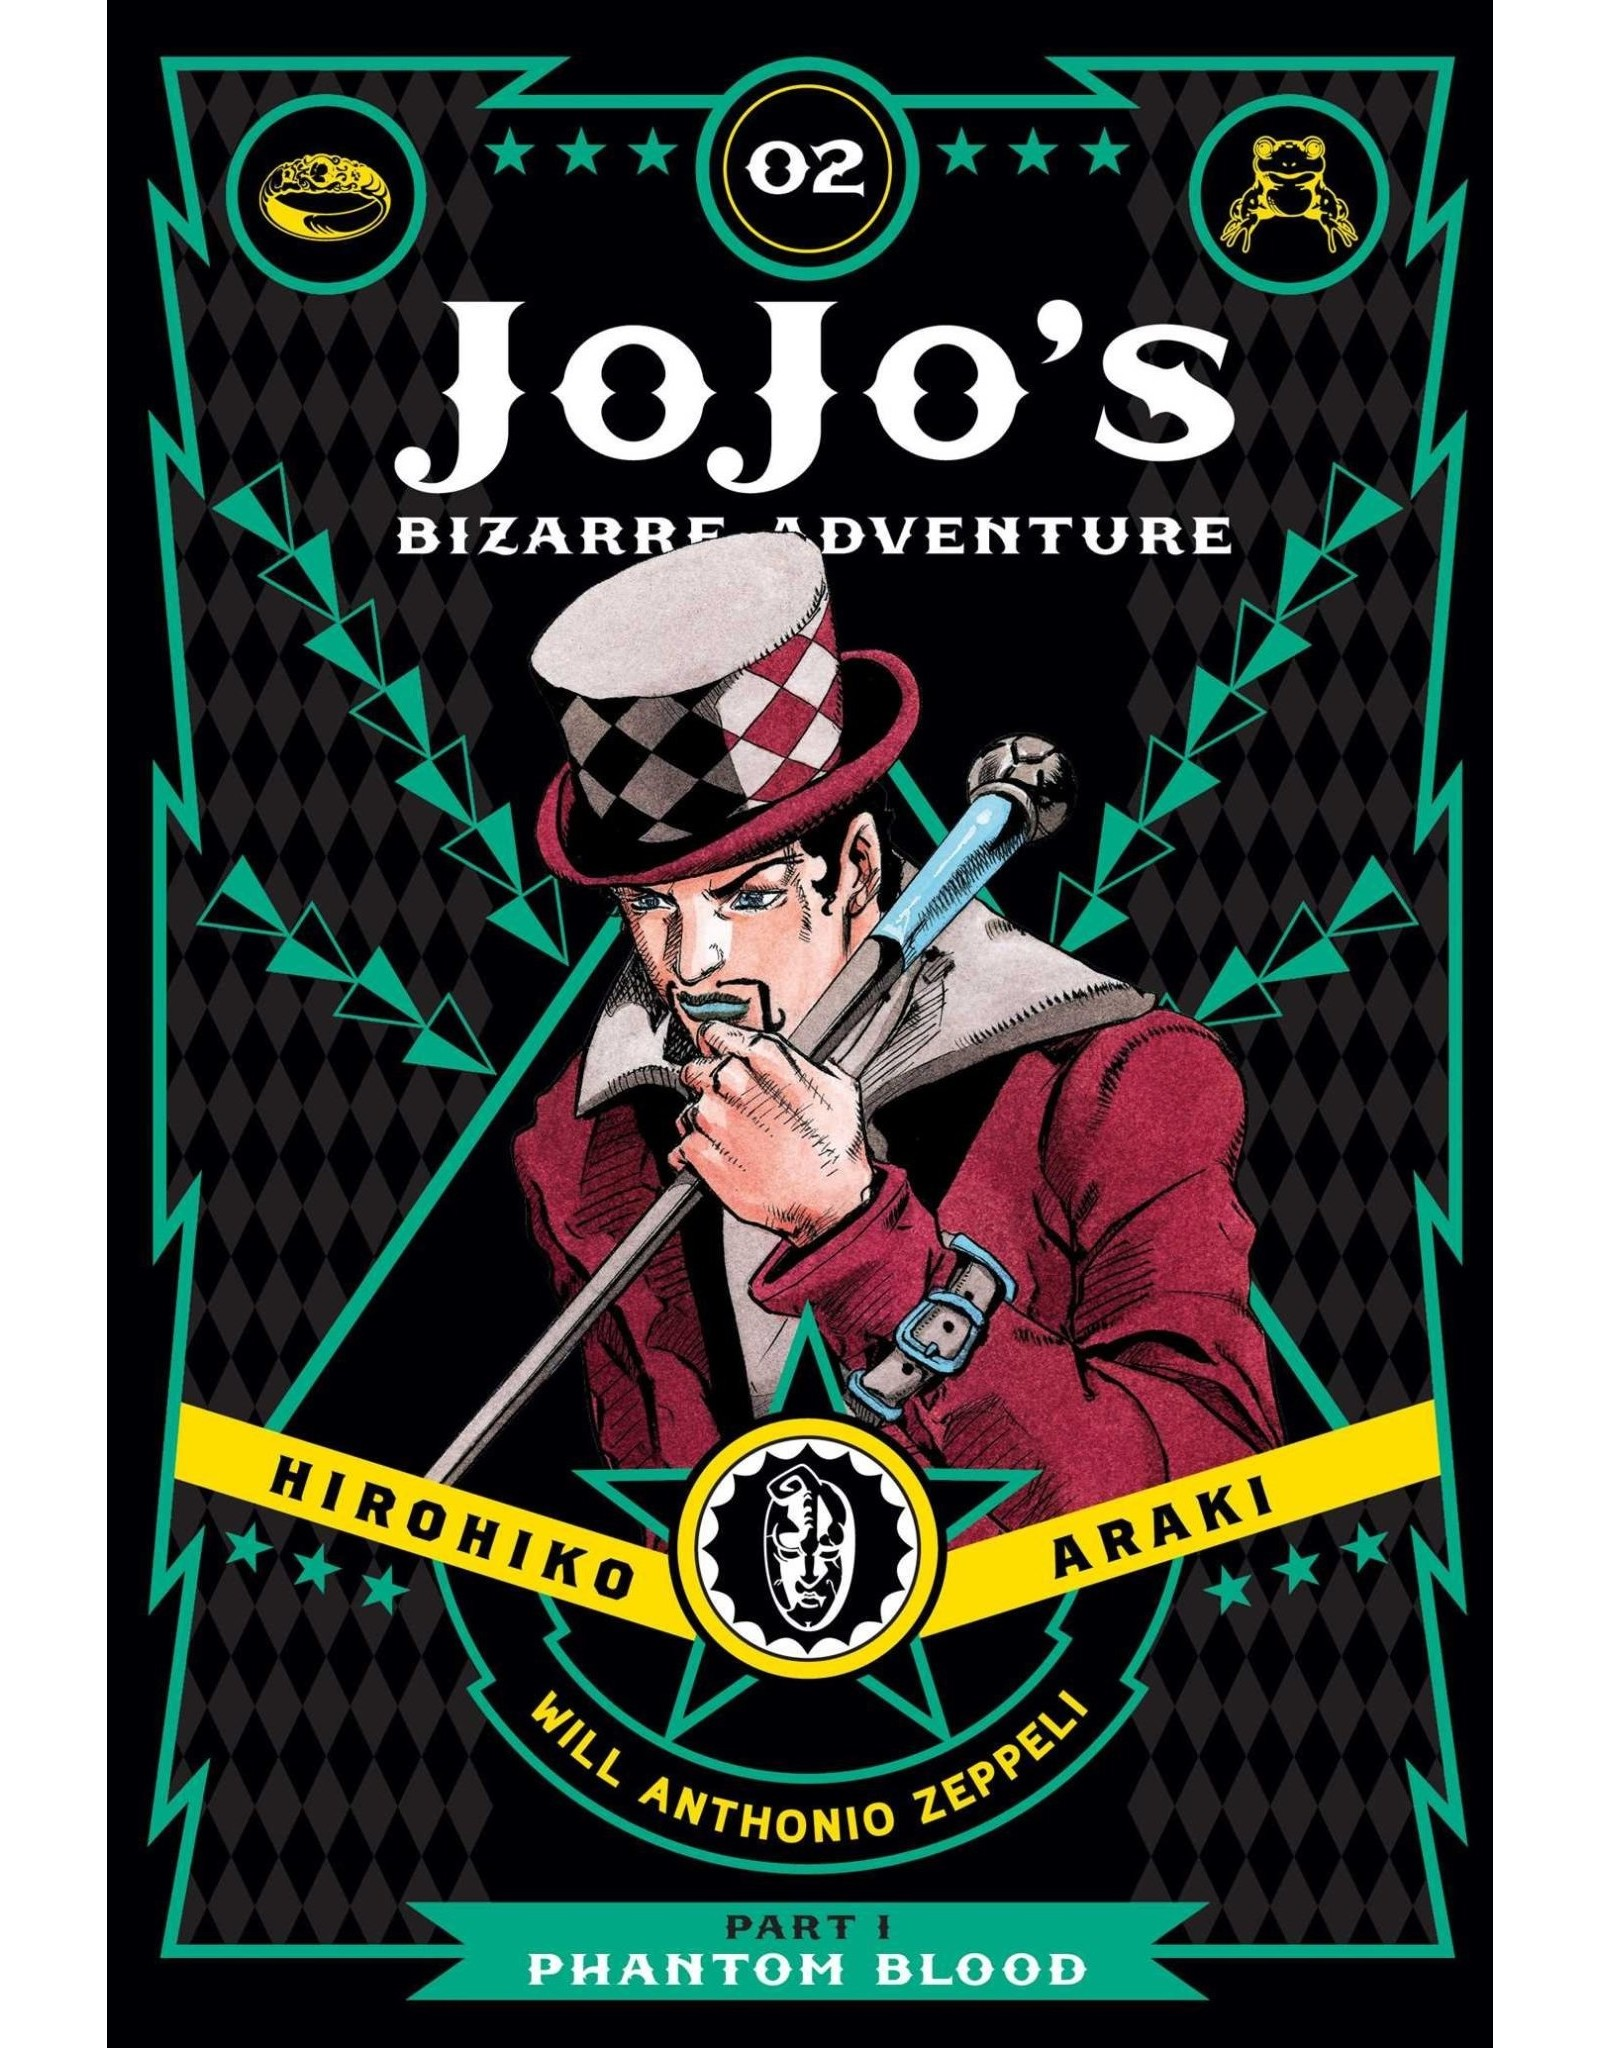 Jojo's Bizarre Adventure - Part 1: Phantom Blood - Volume 2 - Hardcover (English Version)